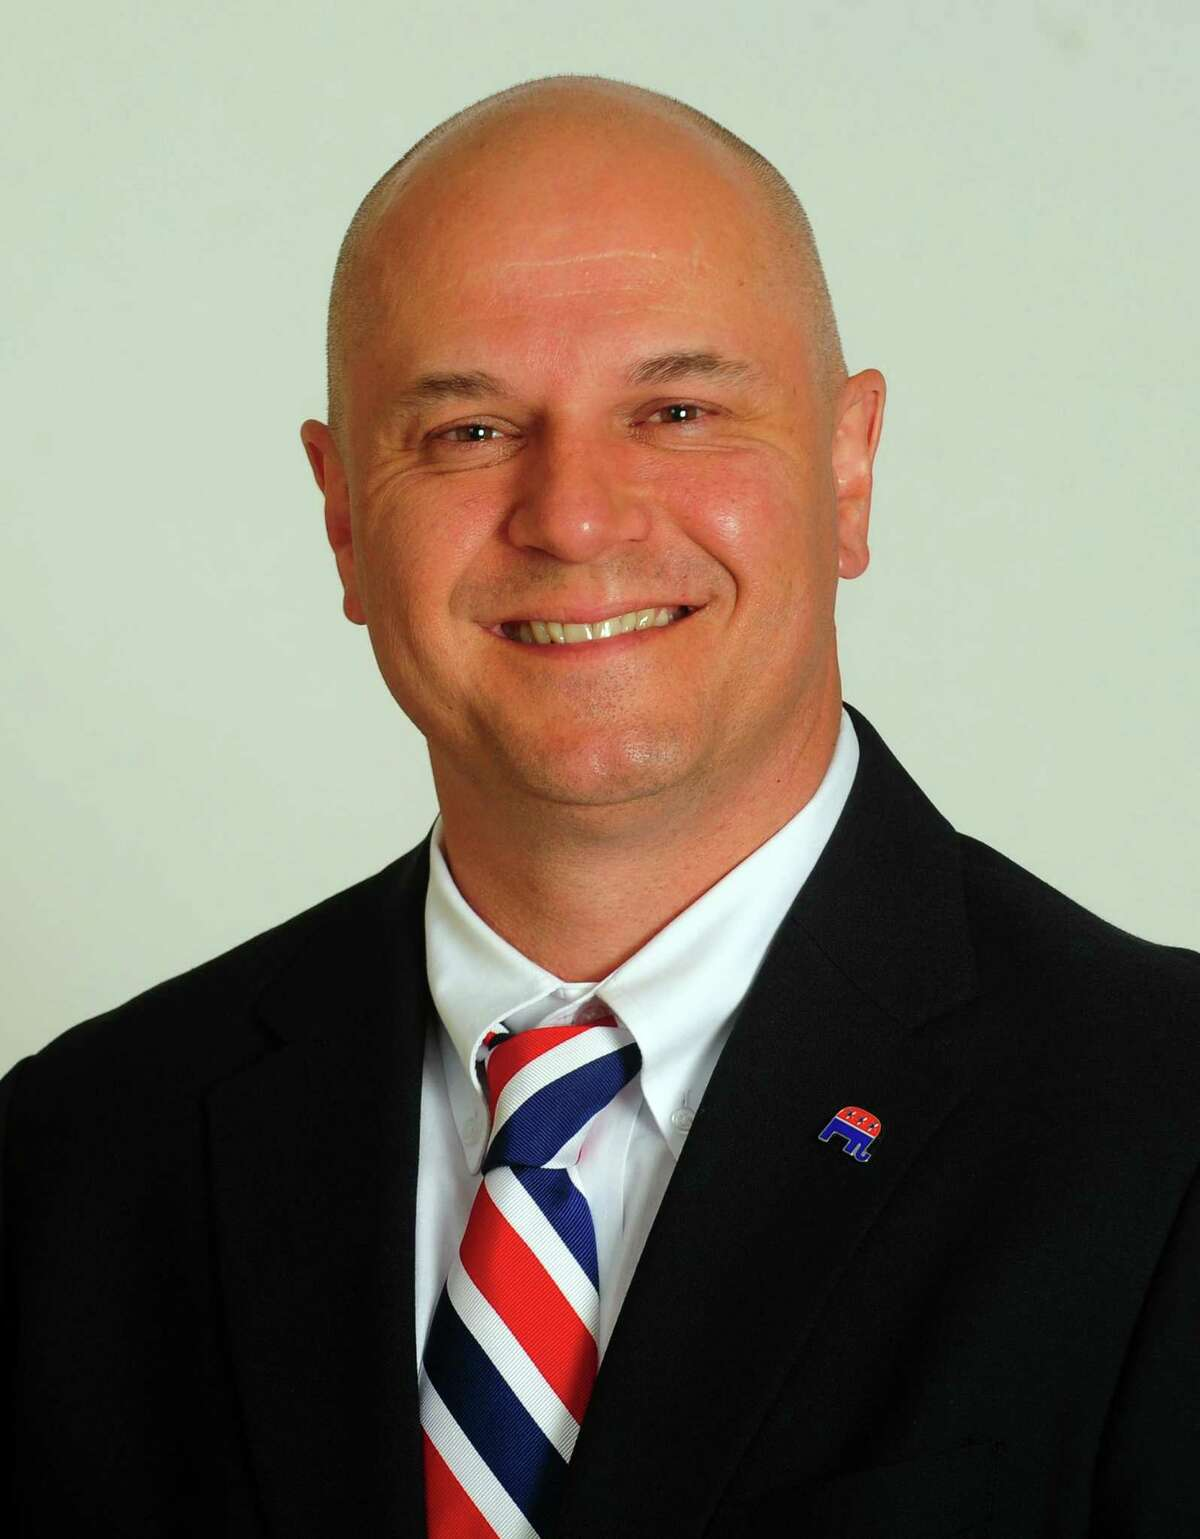 """""""As the chairman of the Stratford Republican Party, I am proud of the slate of candidates we put forward this evening,"""" said Lou Decilio of the Republican Town Committee's endorsements for the November 2019 election."""